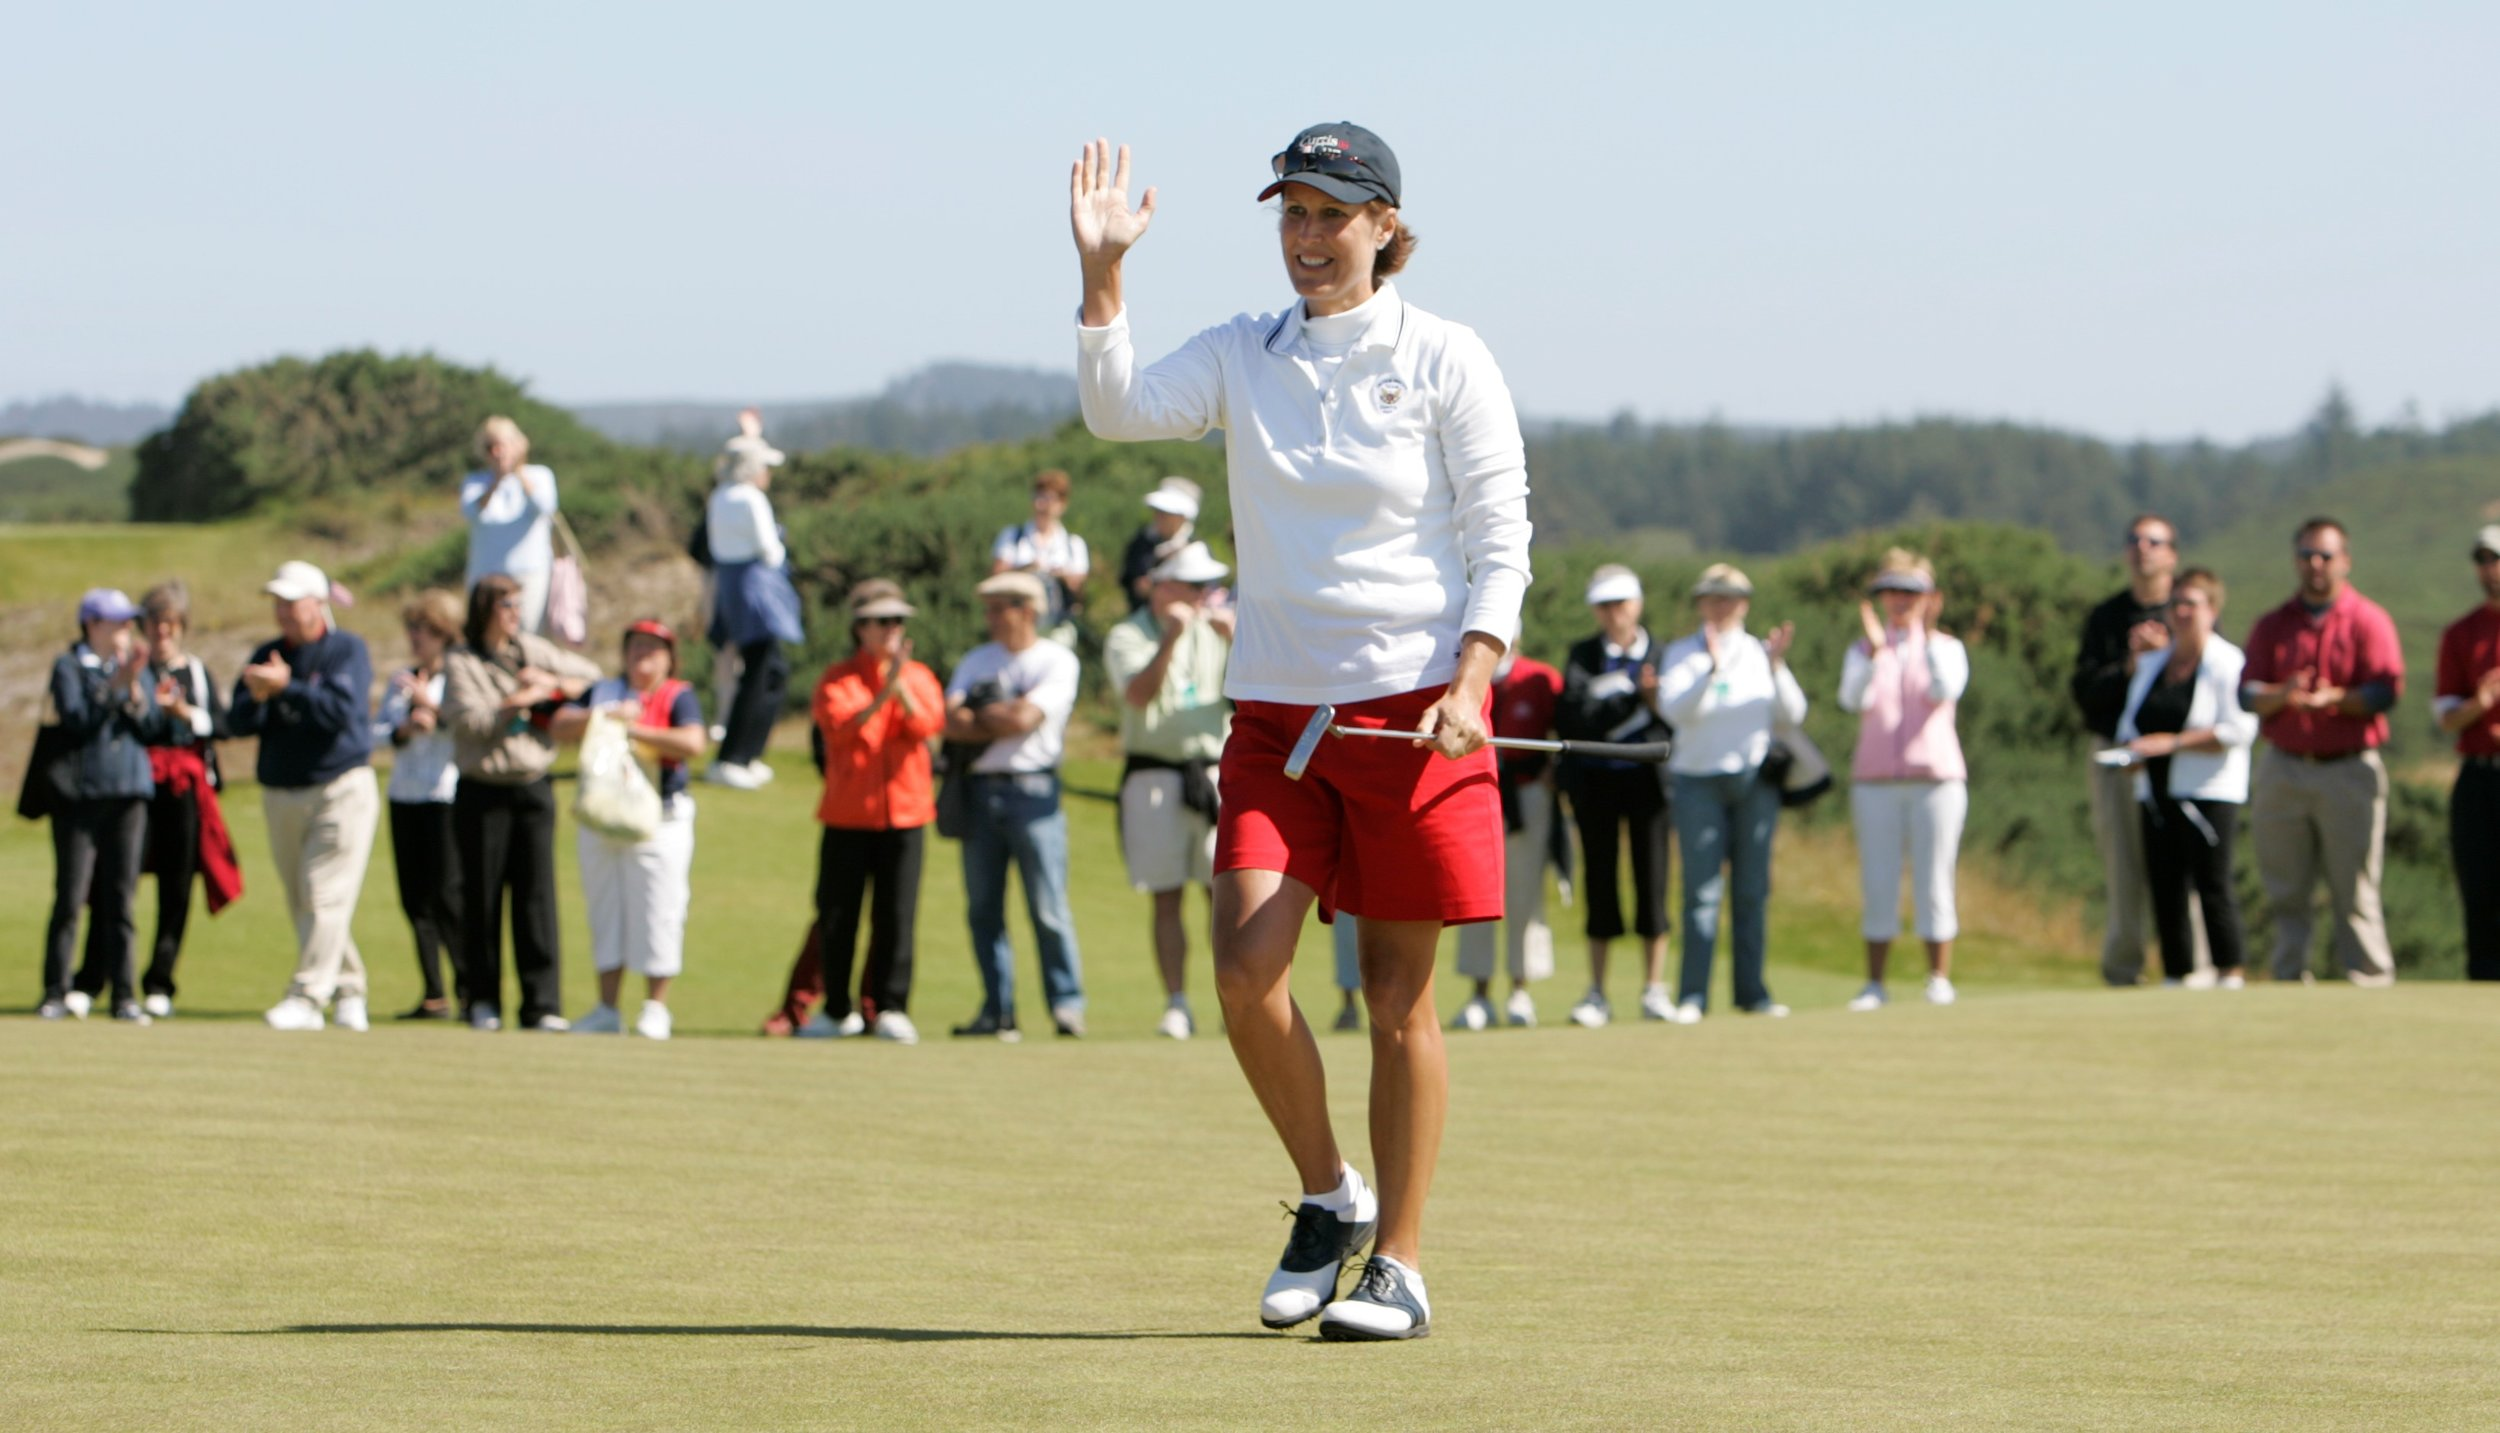 Virginia Derby Grimes, the 2018 U.S. Curtis Cup captain, is one of college golf's greats honored through the Derby Evans Experience. USGA photo